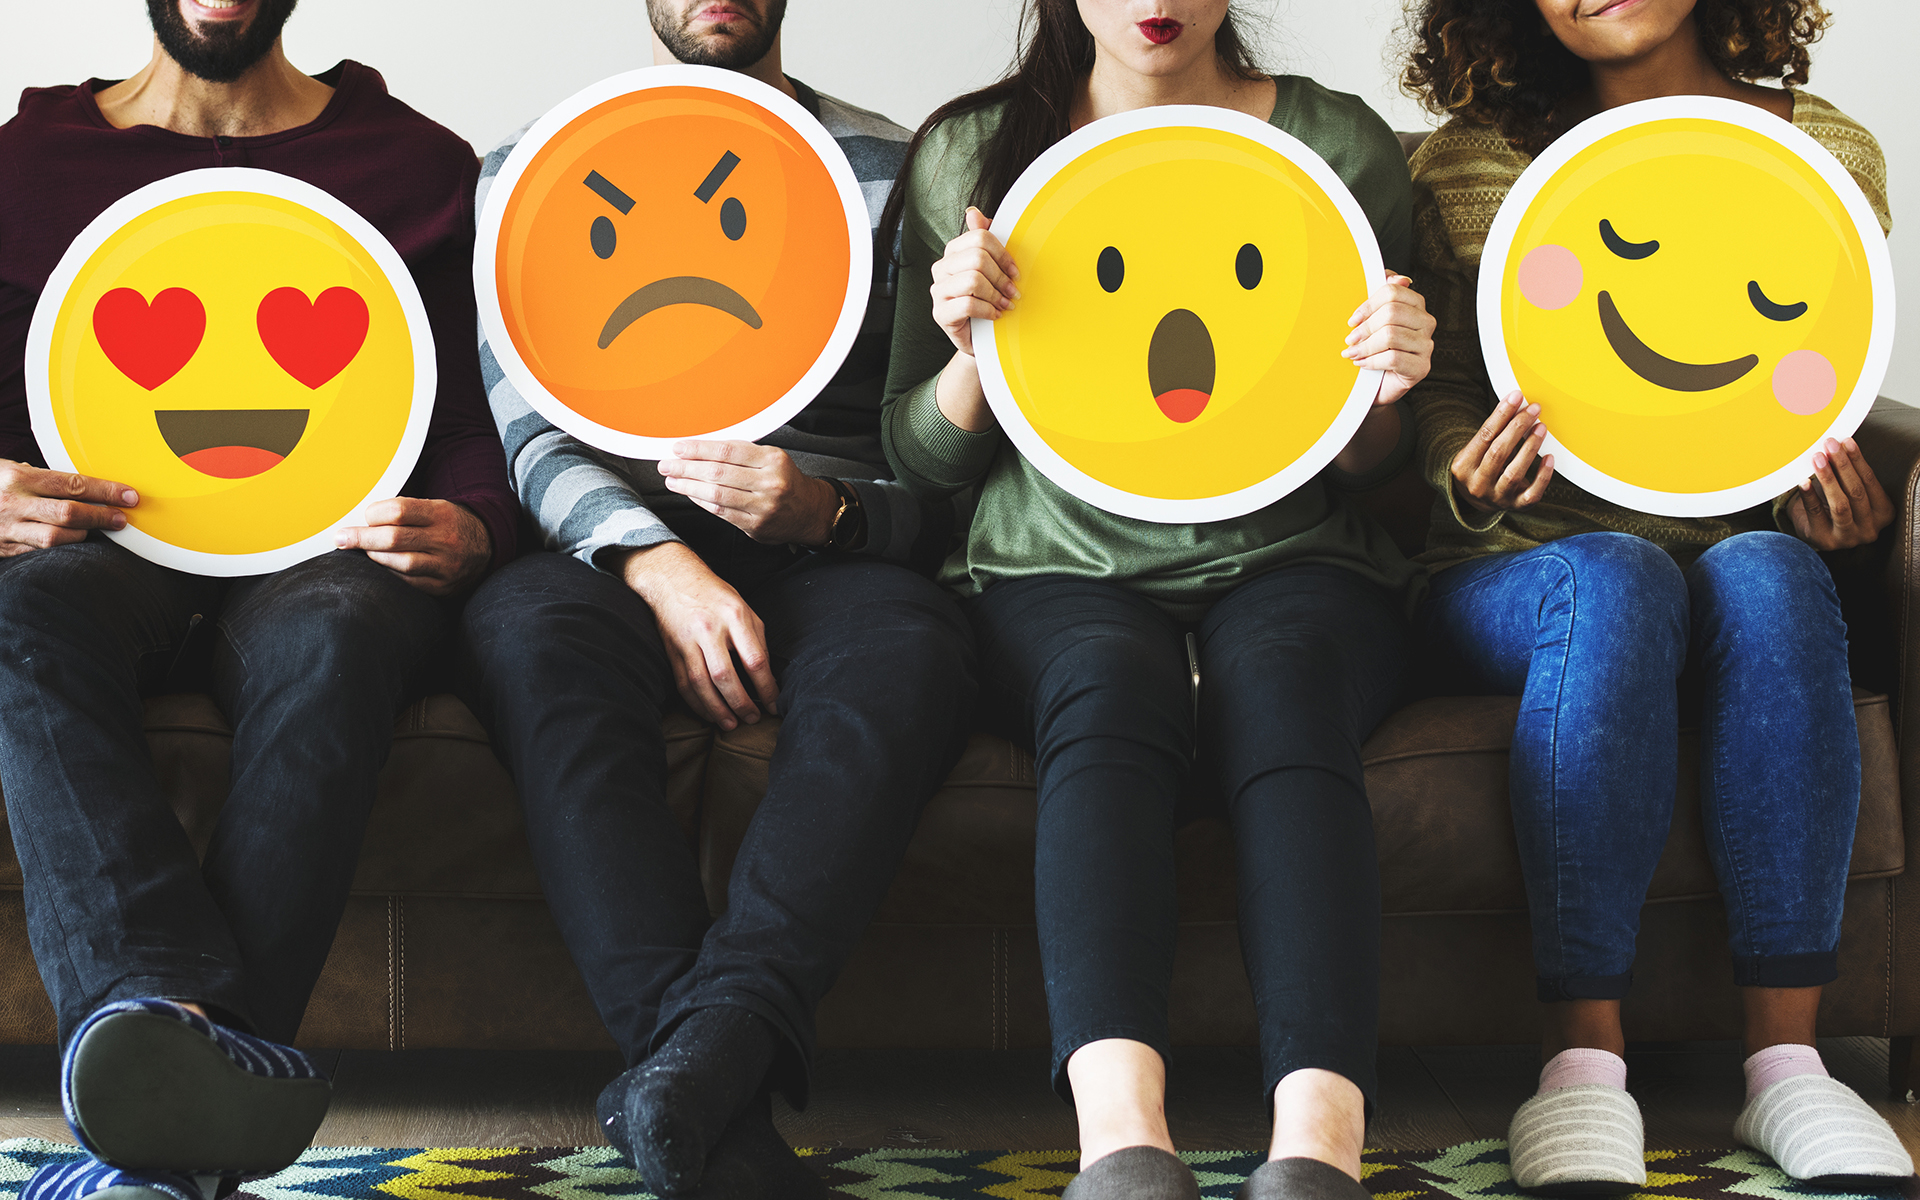 Making Friends with Difficult Emotions - Group of diverse people holding emoticon icons